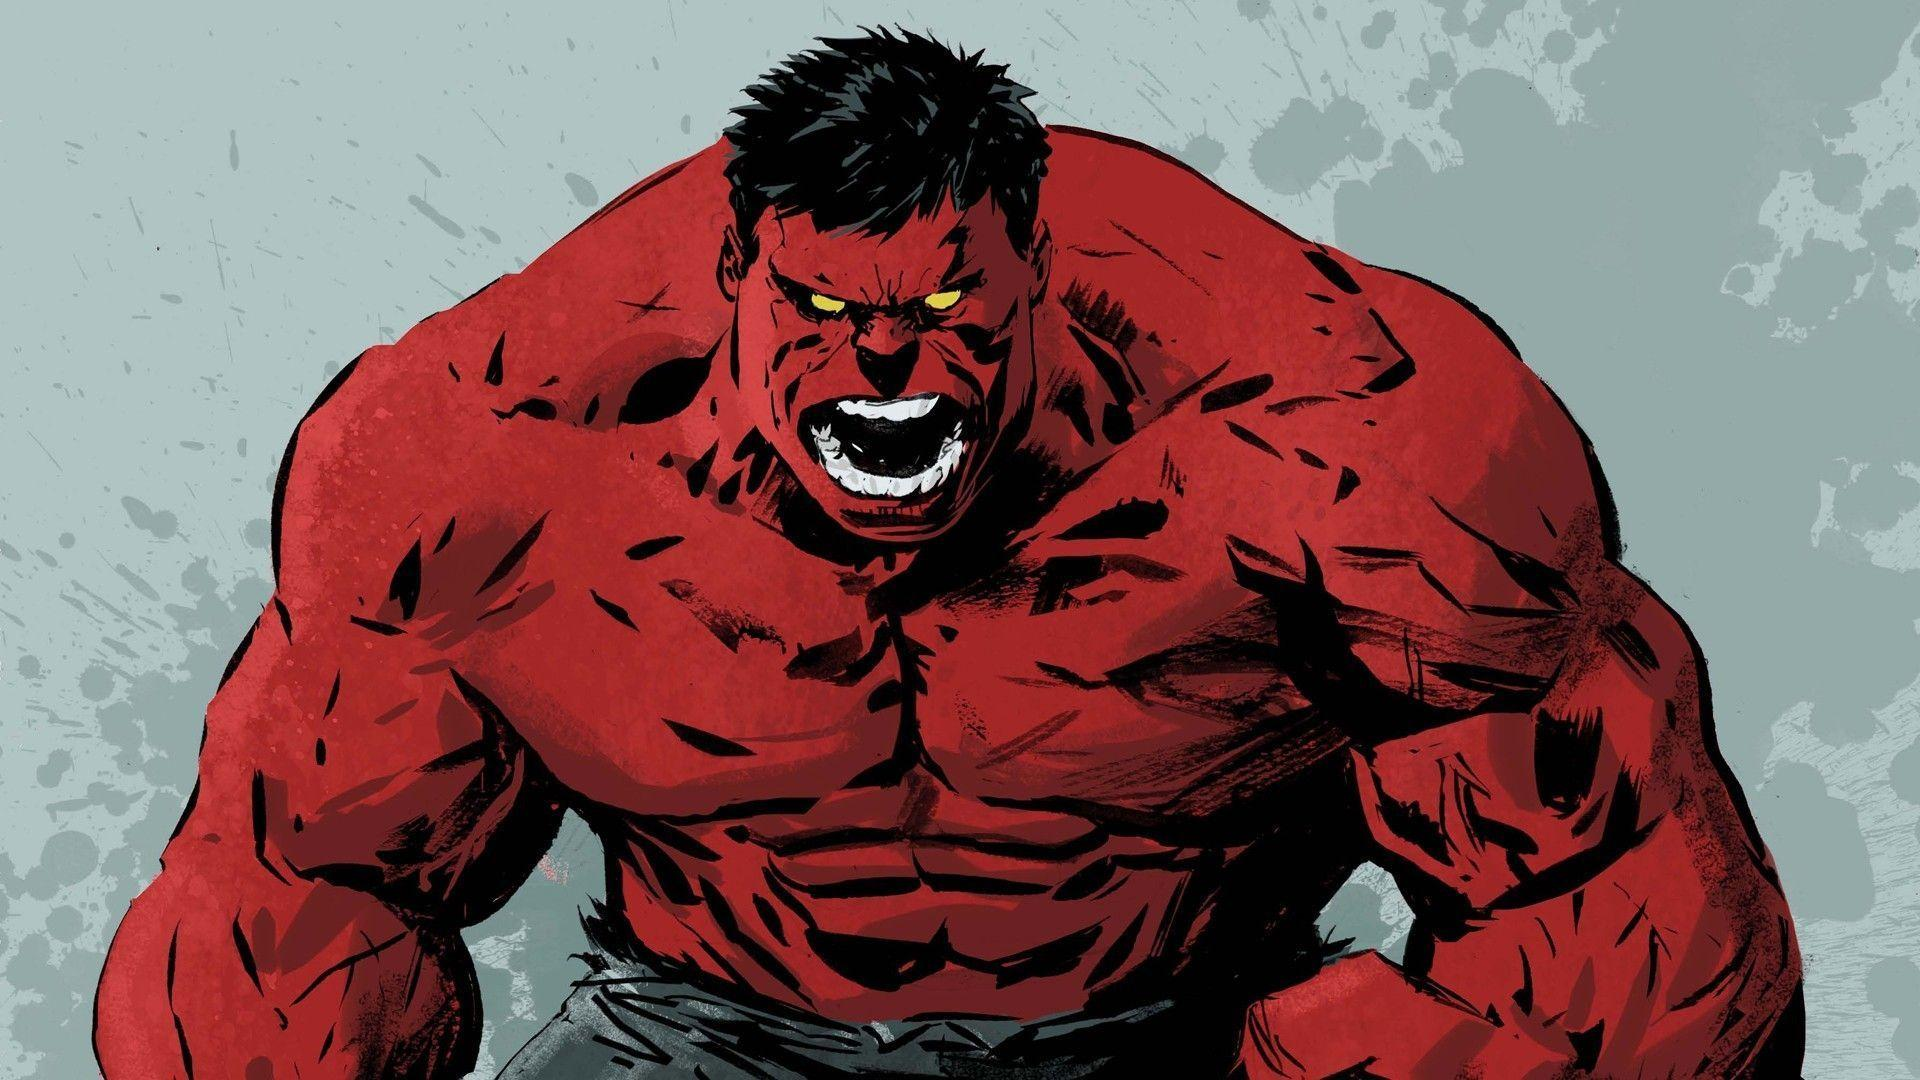 The Red Hulk Wallpapers